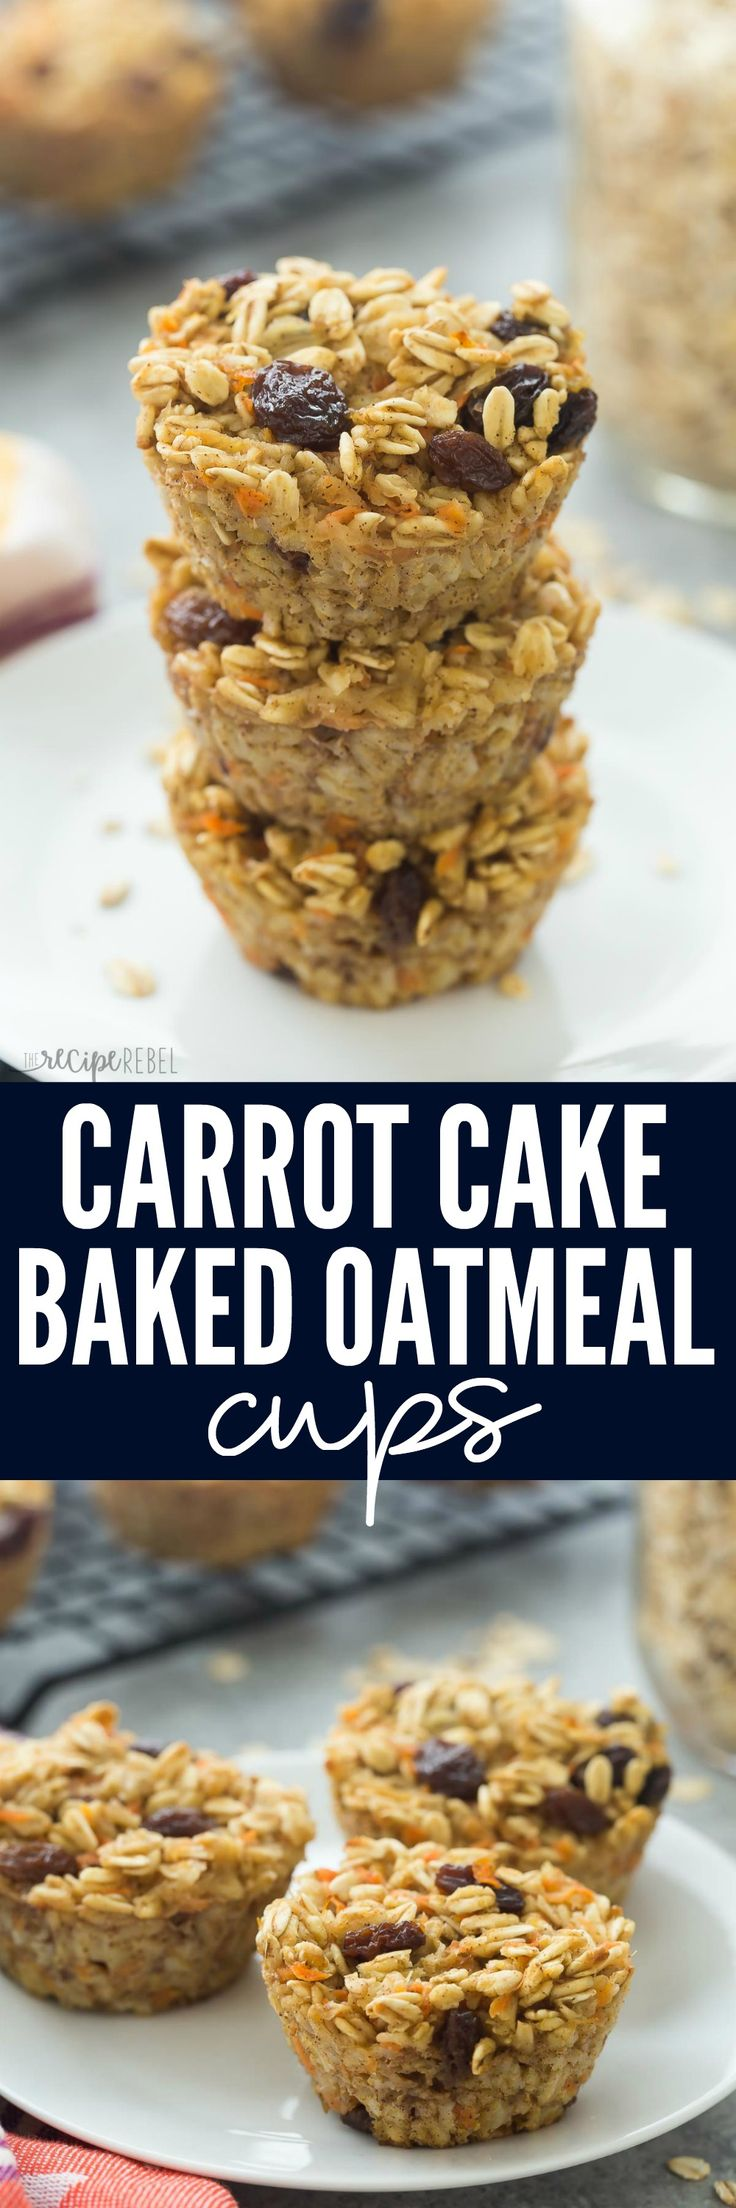 These Carrot Cake Baked Oatmeal Cups are super simple -- a great on the go breakfast, lunch or snack! Packed with fiber and protein and low in calories.